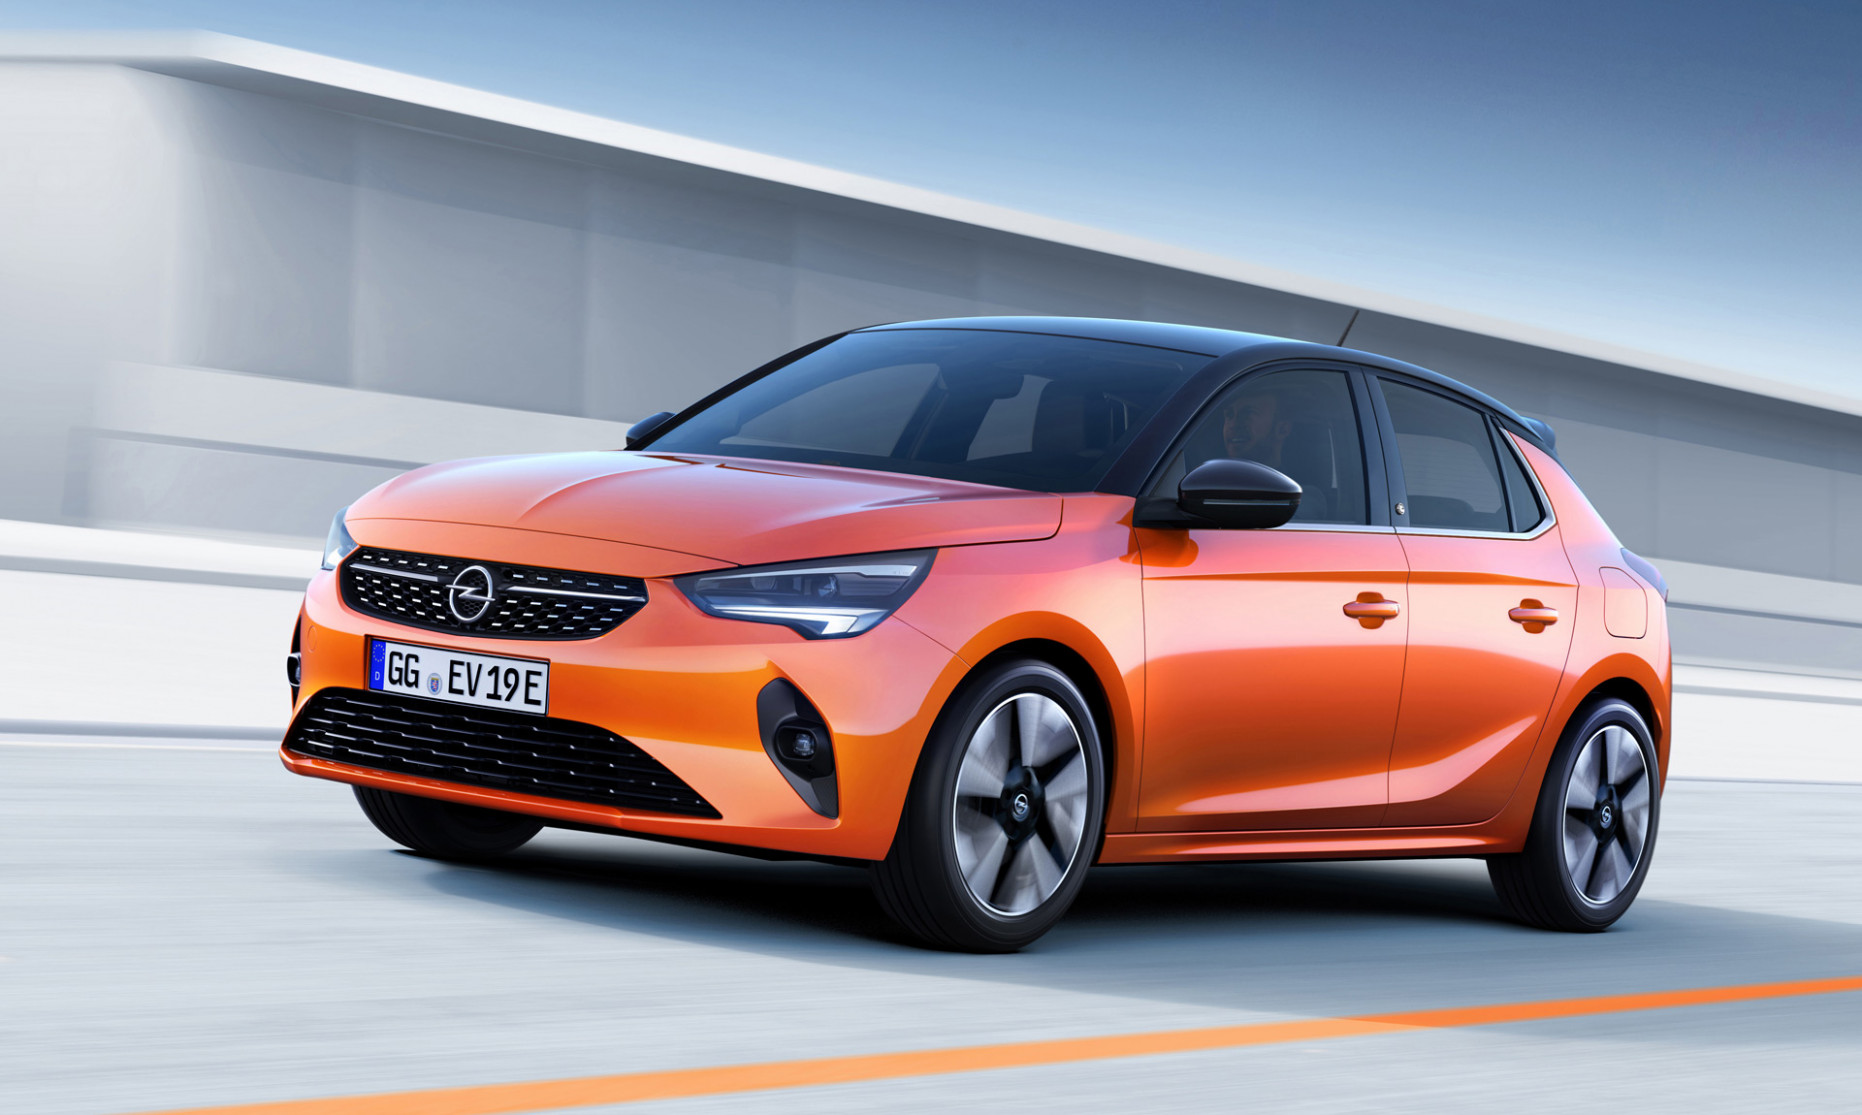 History Opel Will Launch Full-Electric Corsa In 2022